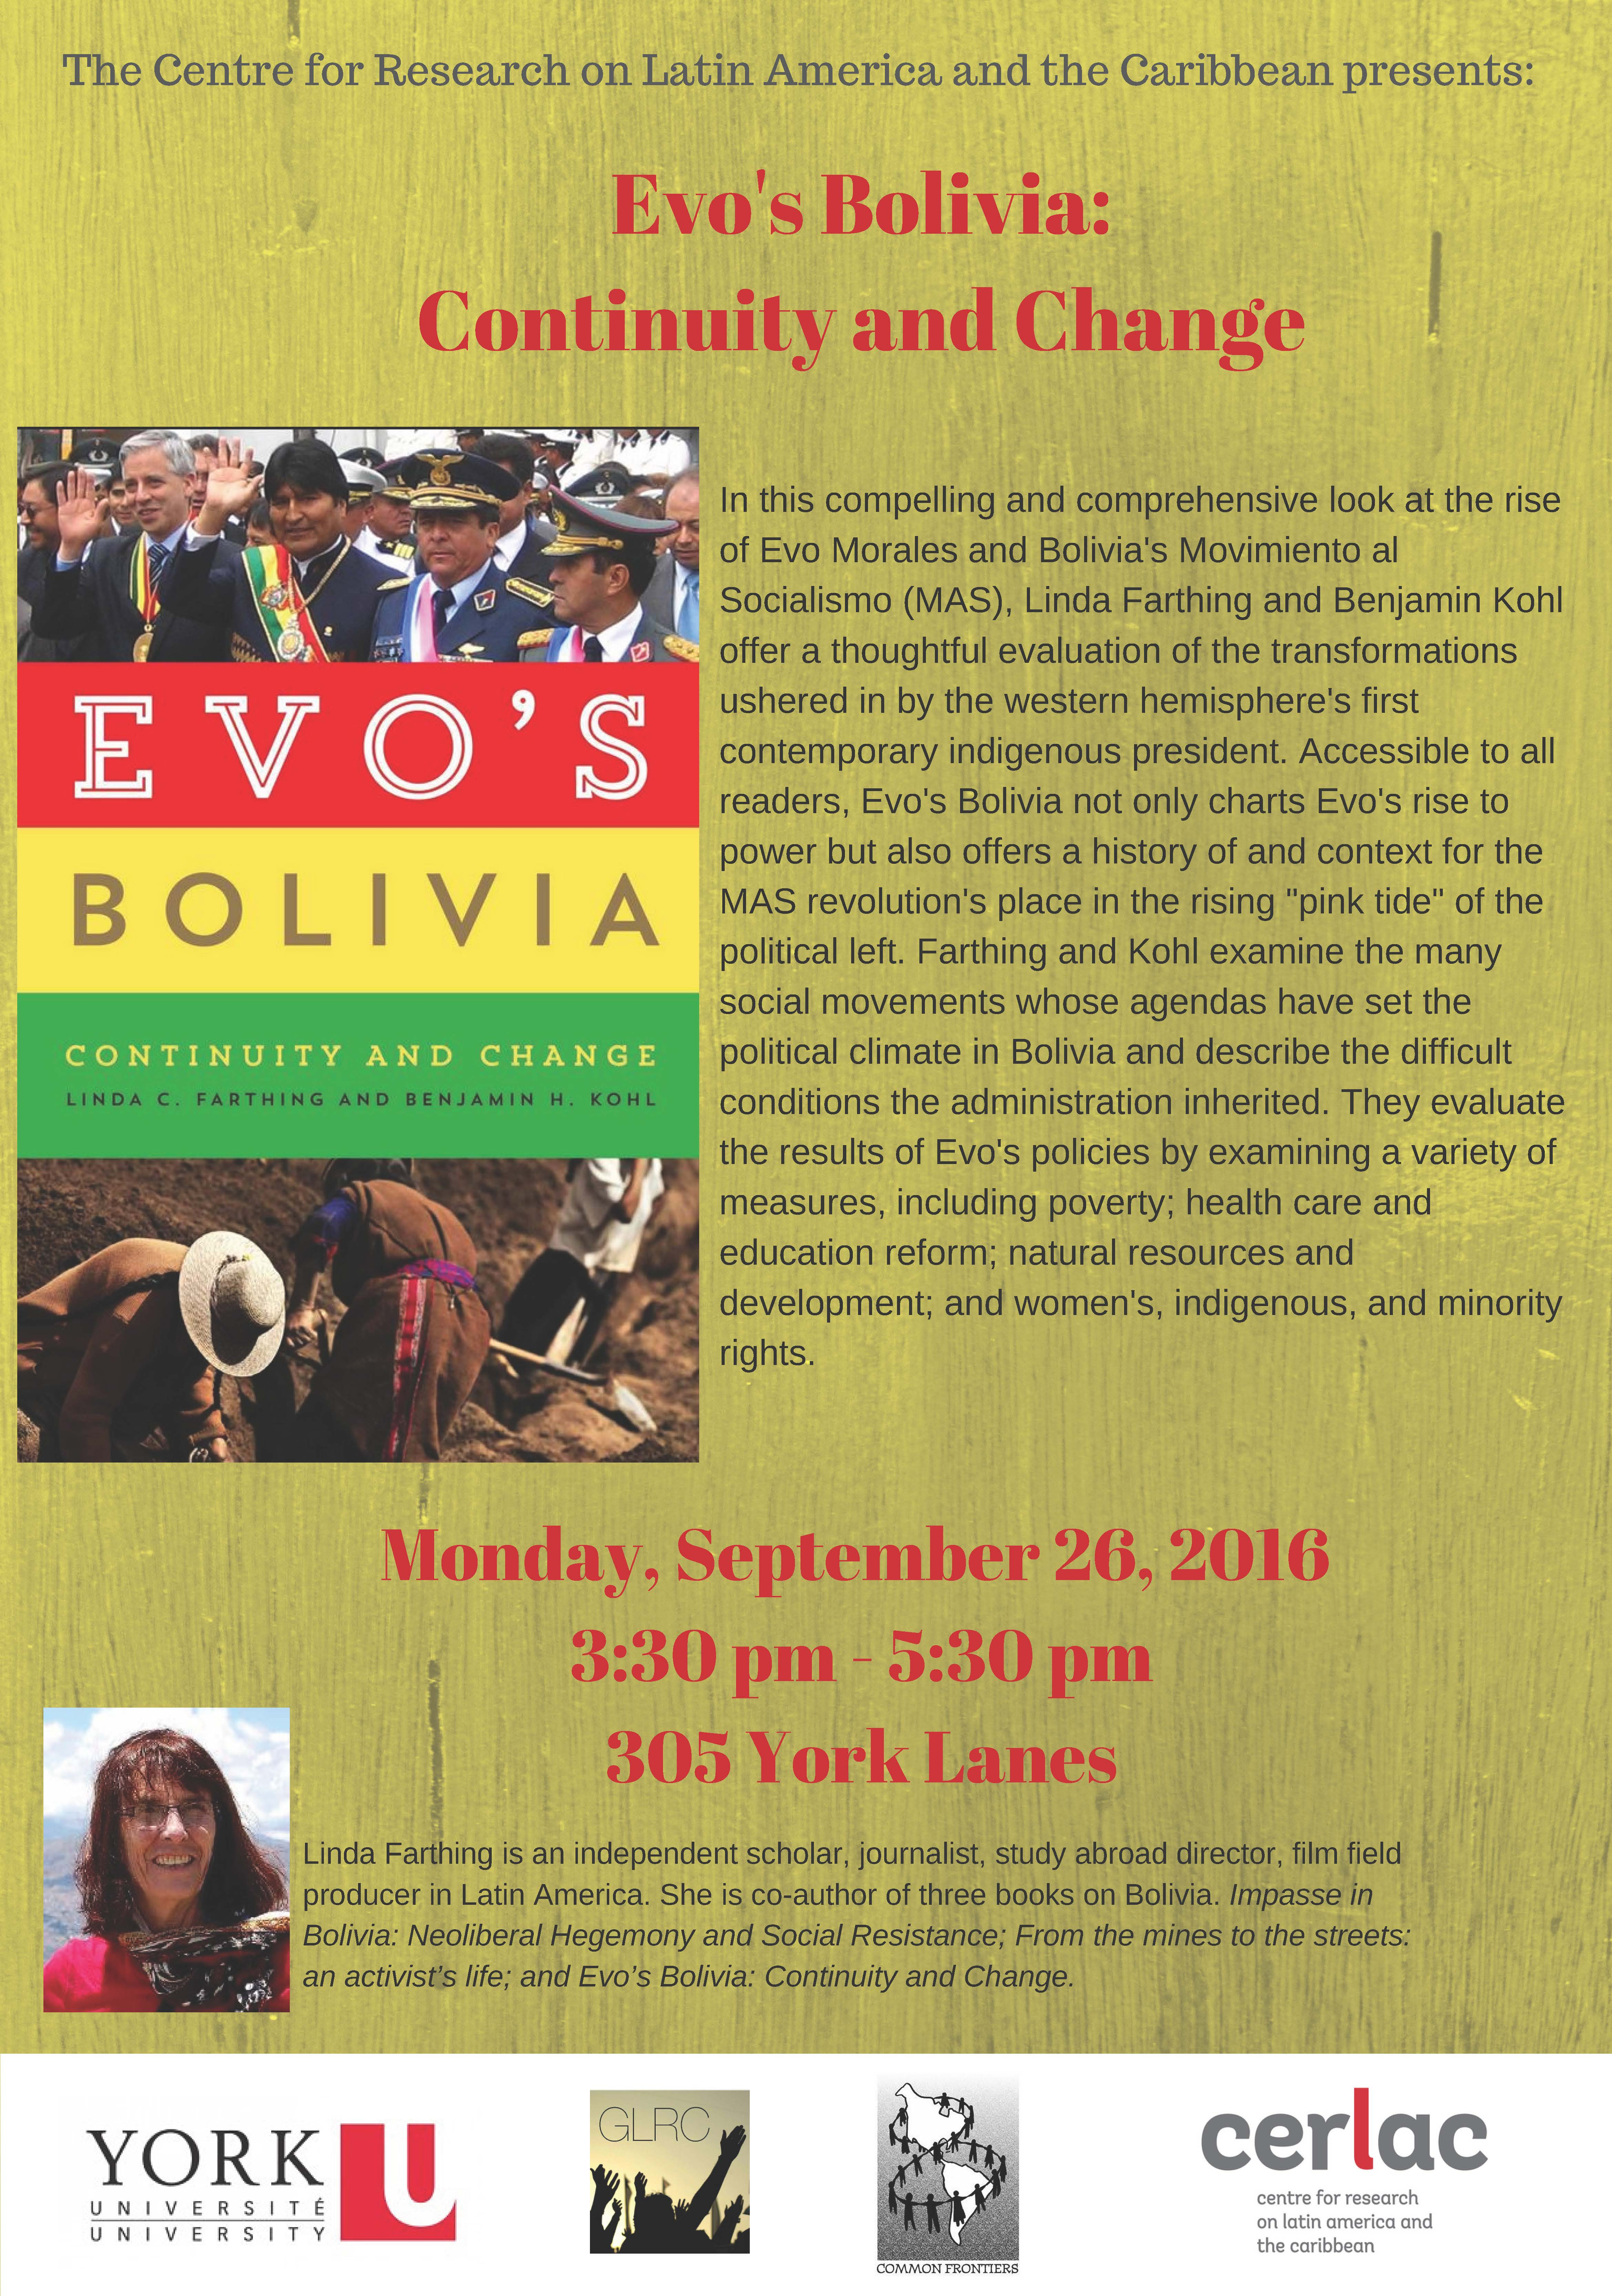 Evo's Bolivia: Continuity and Change. Talk by Linda Farthing @ 305 York Lanes